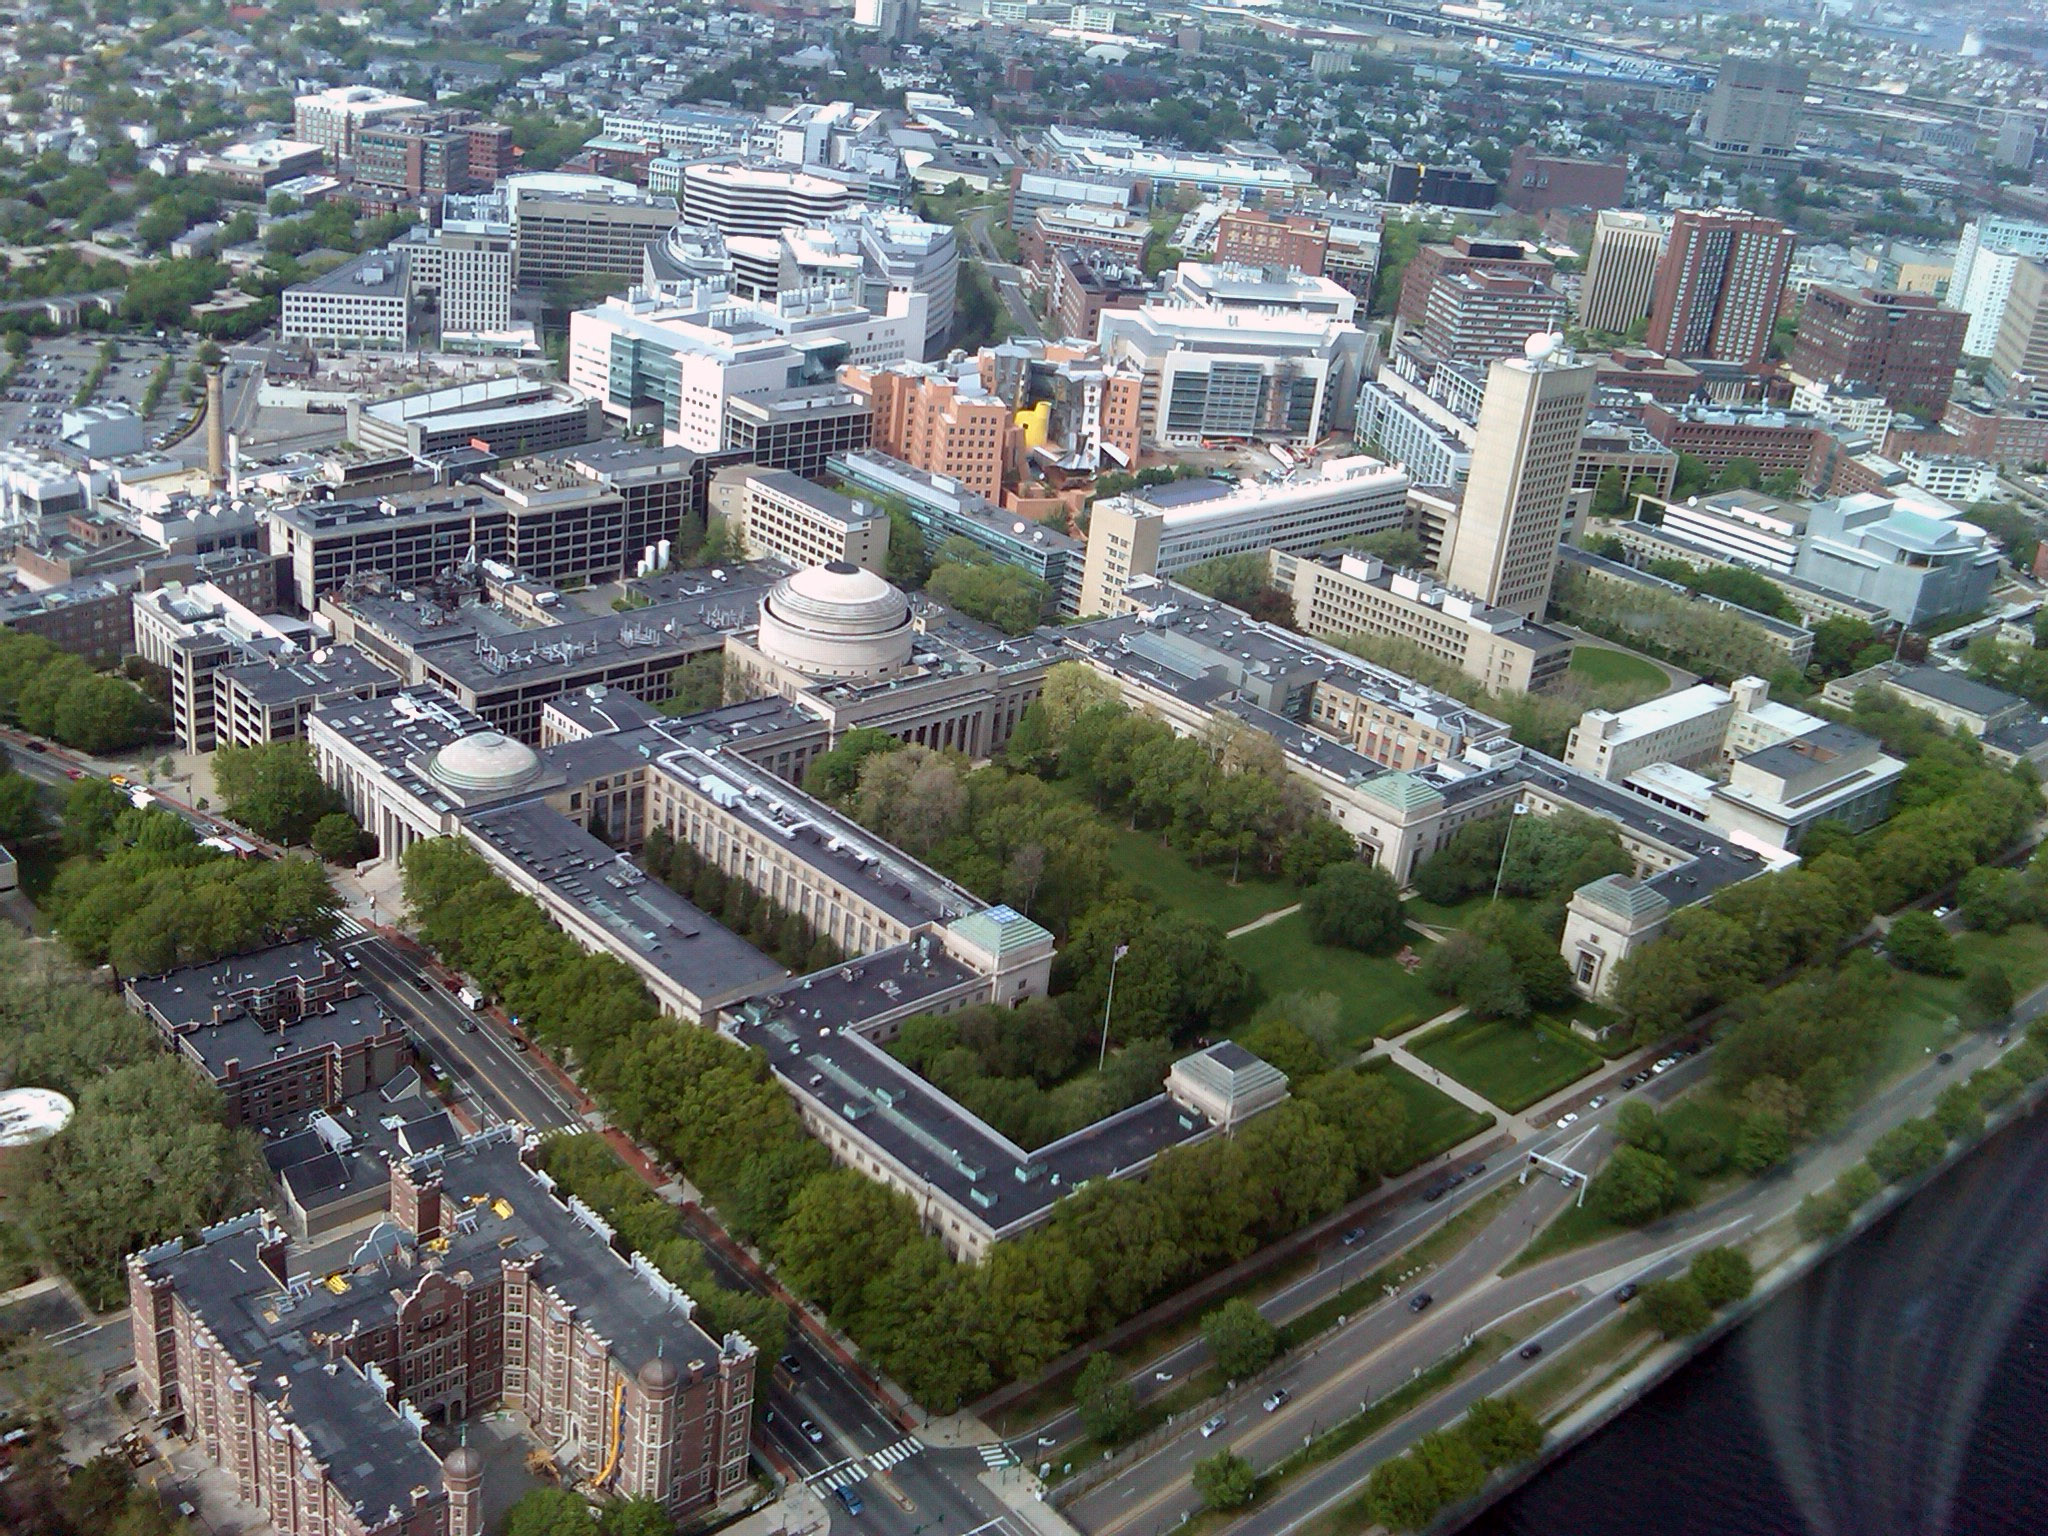 Applied Materials Campus Map.Campus Of The Massachusetts Institute Of Technology Wikipedia